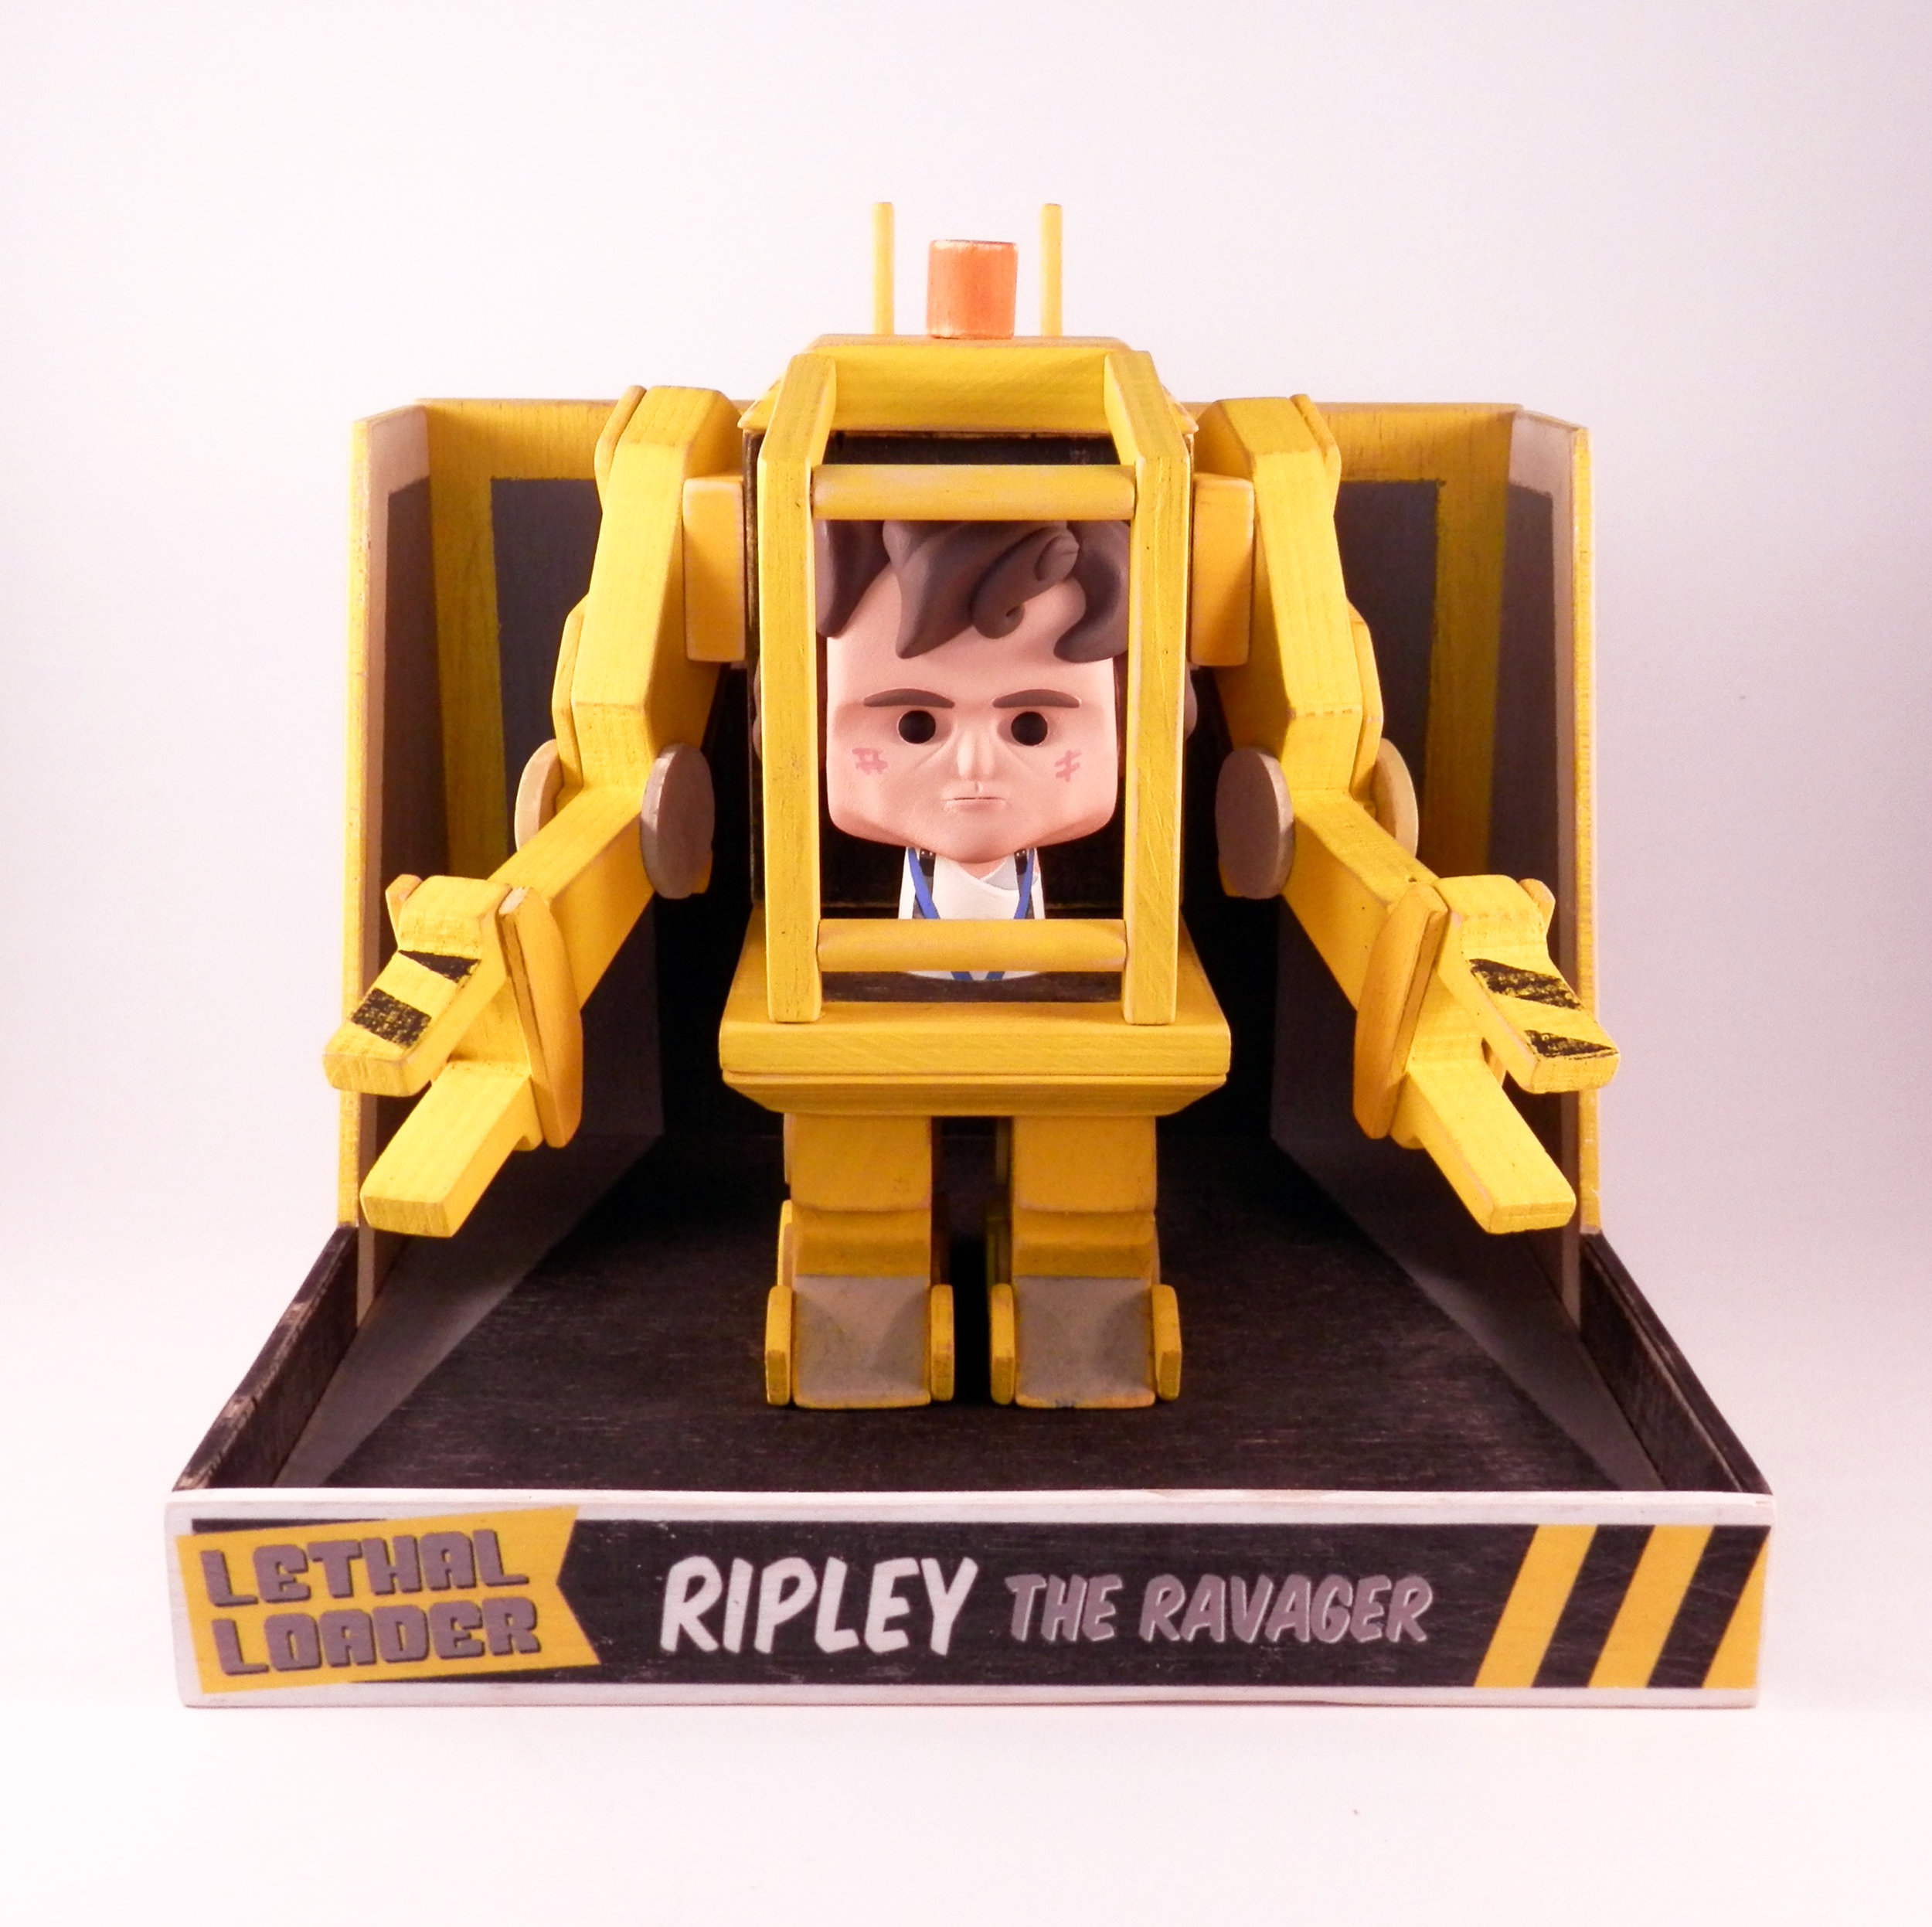 Ripley the Ravager